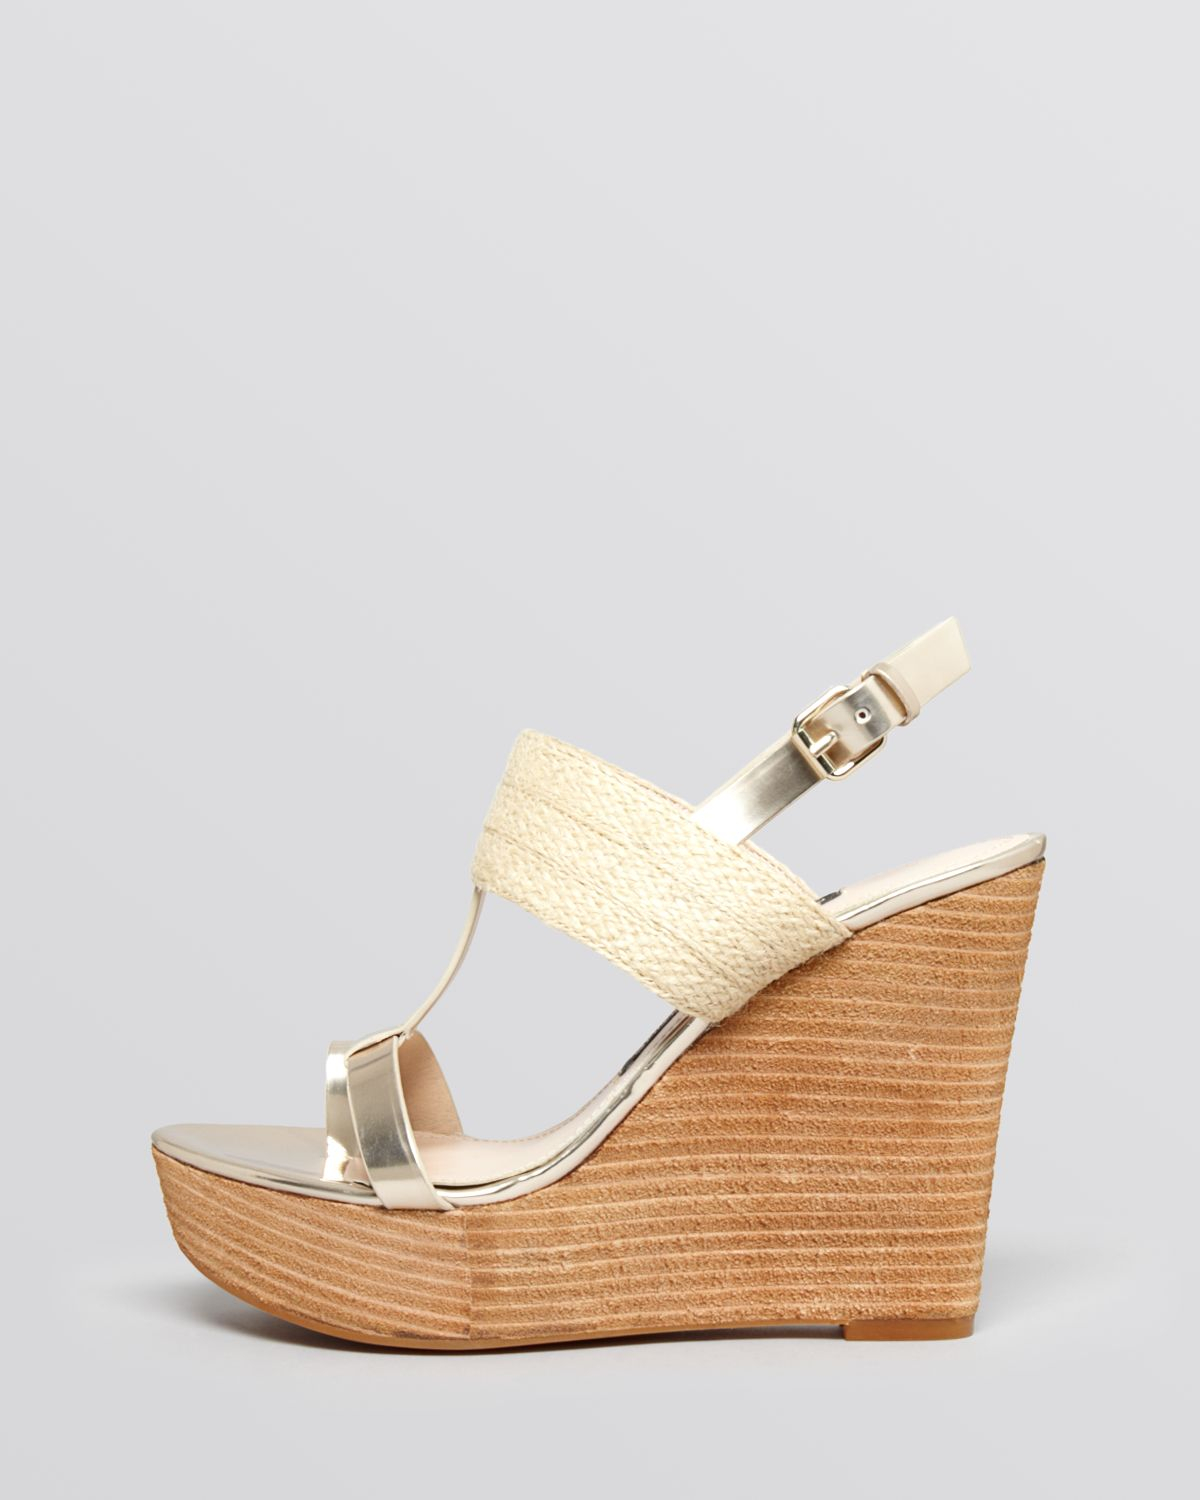 8757eb2c9d60 Lyst - French Connection Platform Wedge Sandals - Deisree in Natural